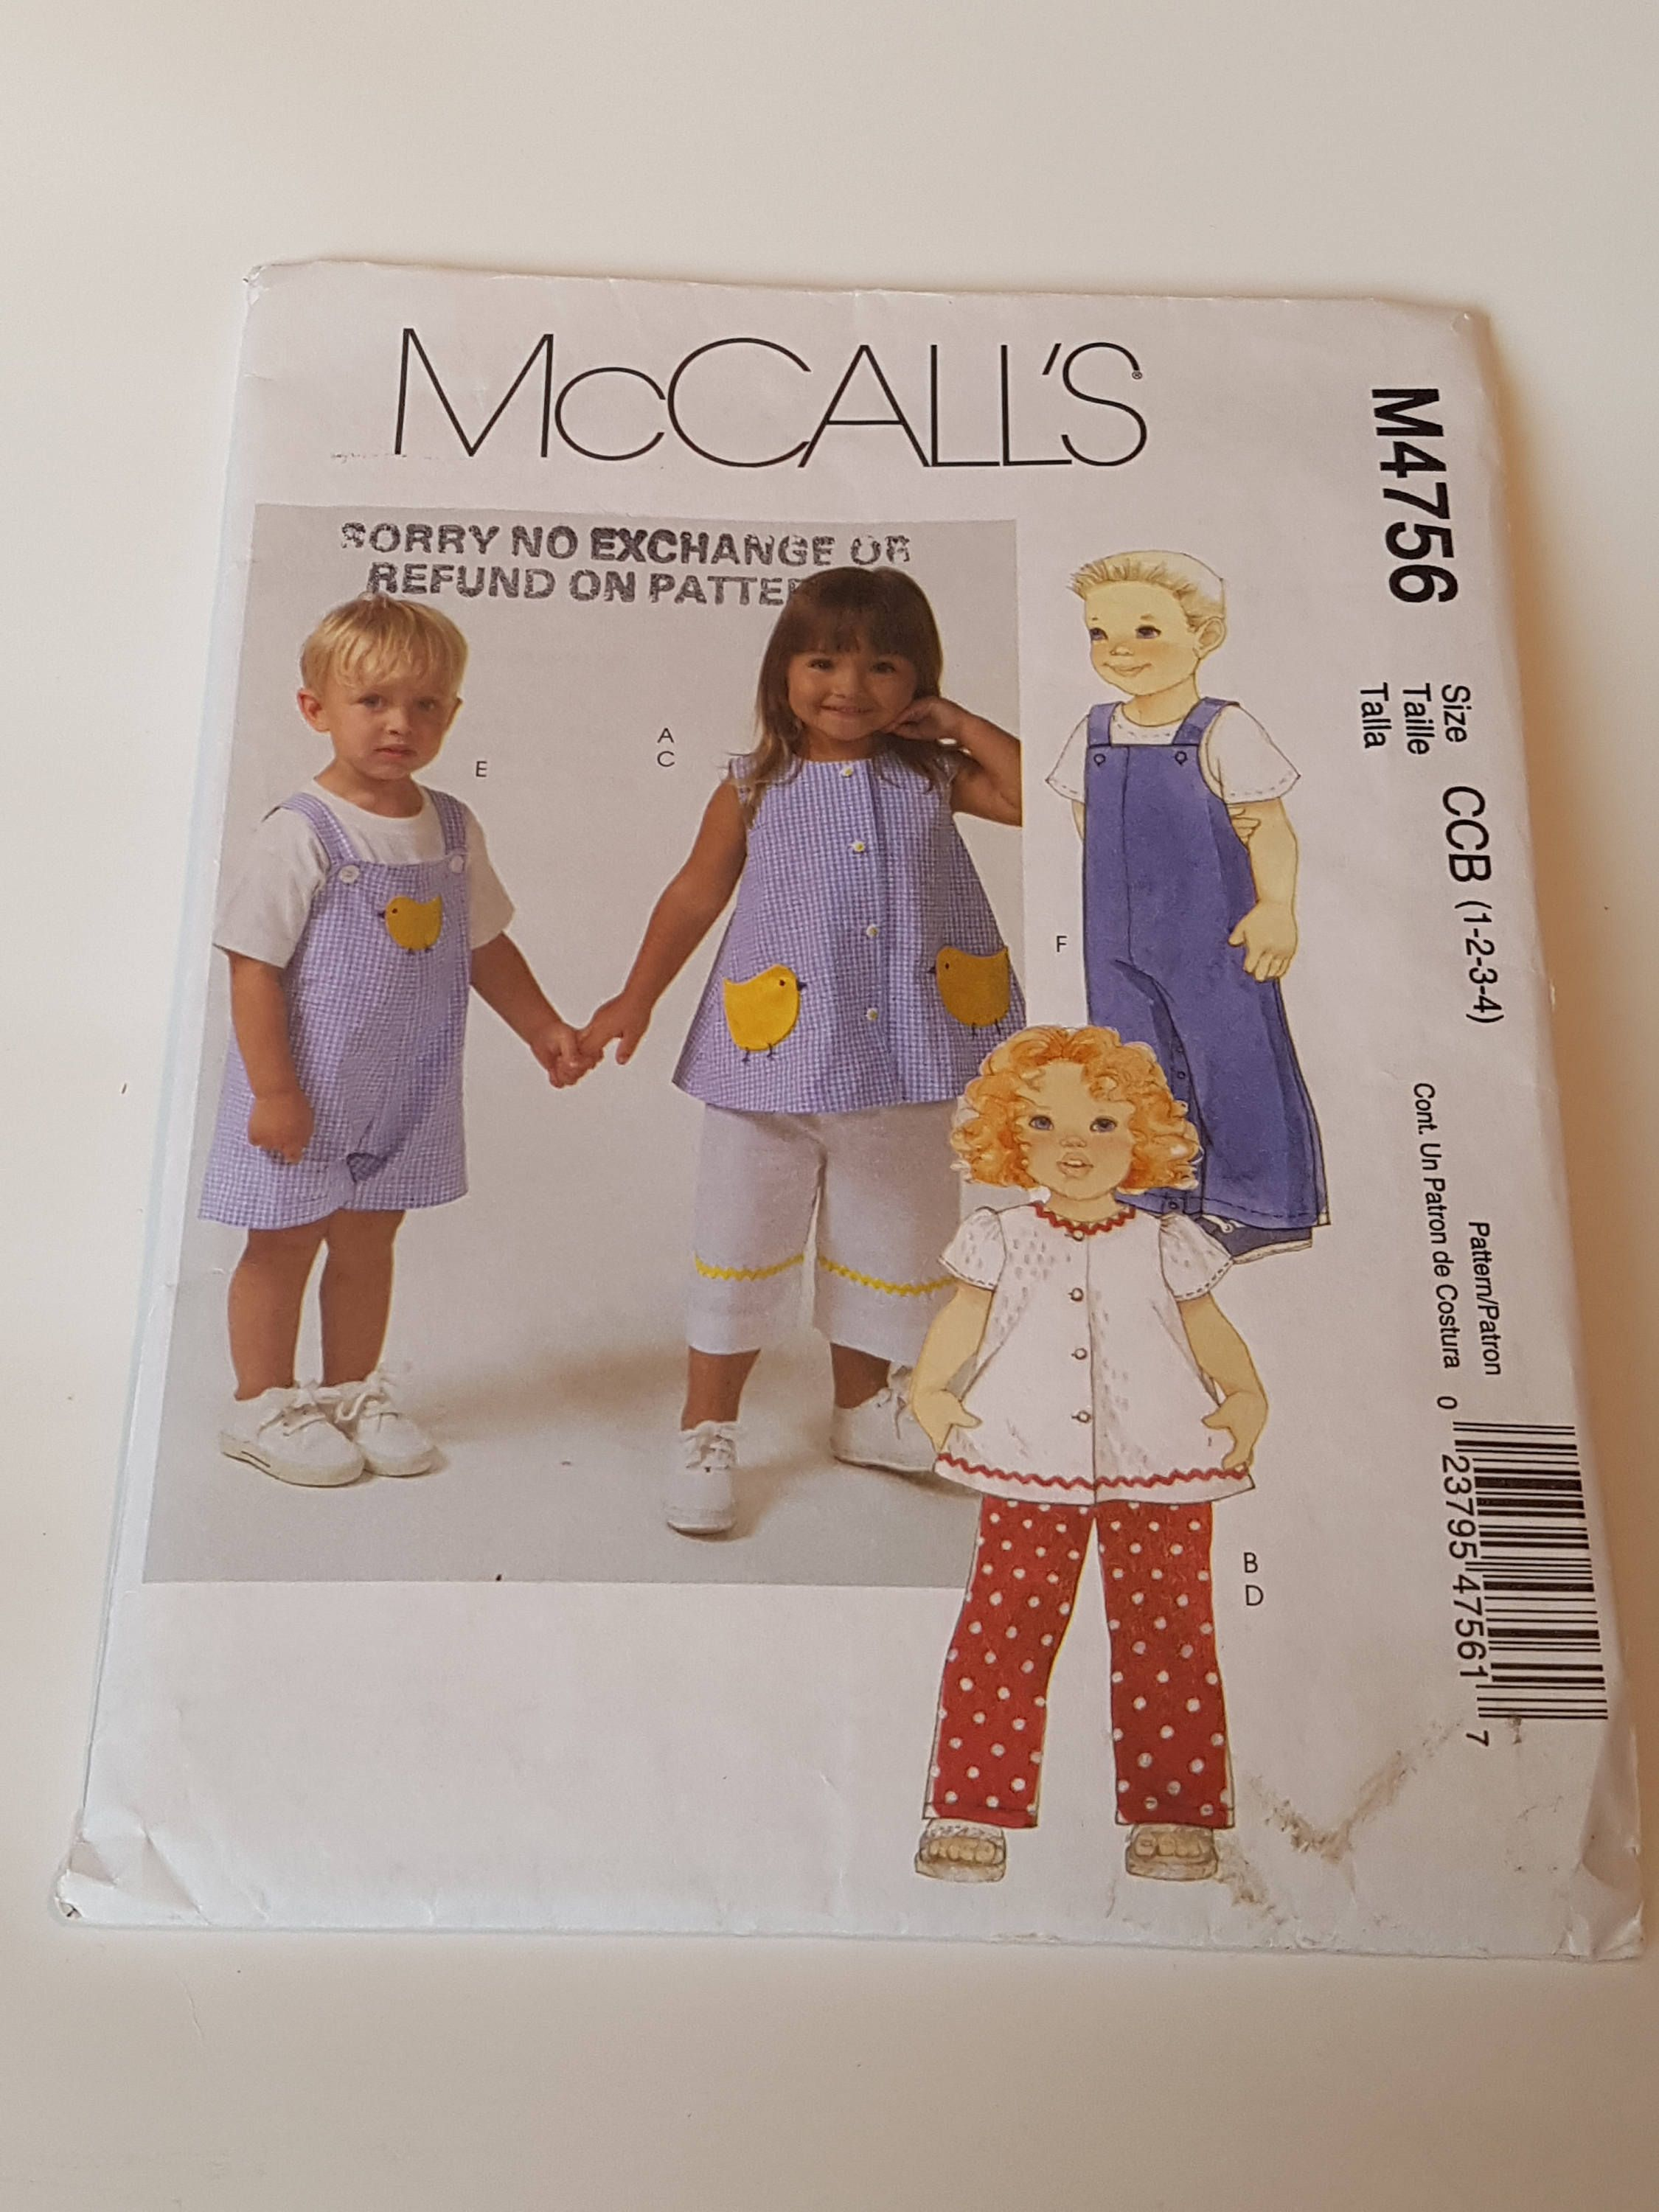 Mccalls sewing pattern m4756 toddlers tops pants and jumpsuit mccalls sewing pattern m4756 toddlers tops pants and jumpsuit in 2 lengths in size jeuxipadfo Choice Image